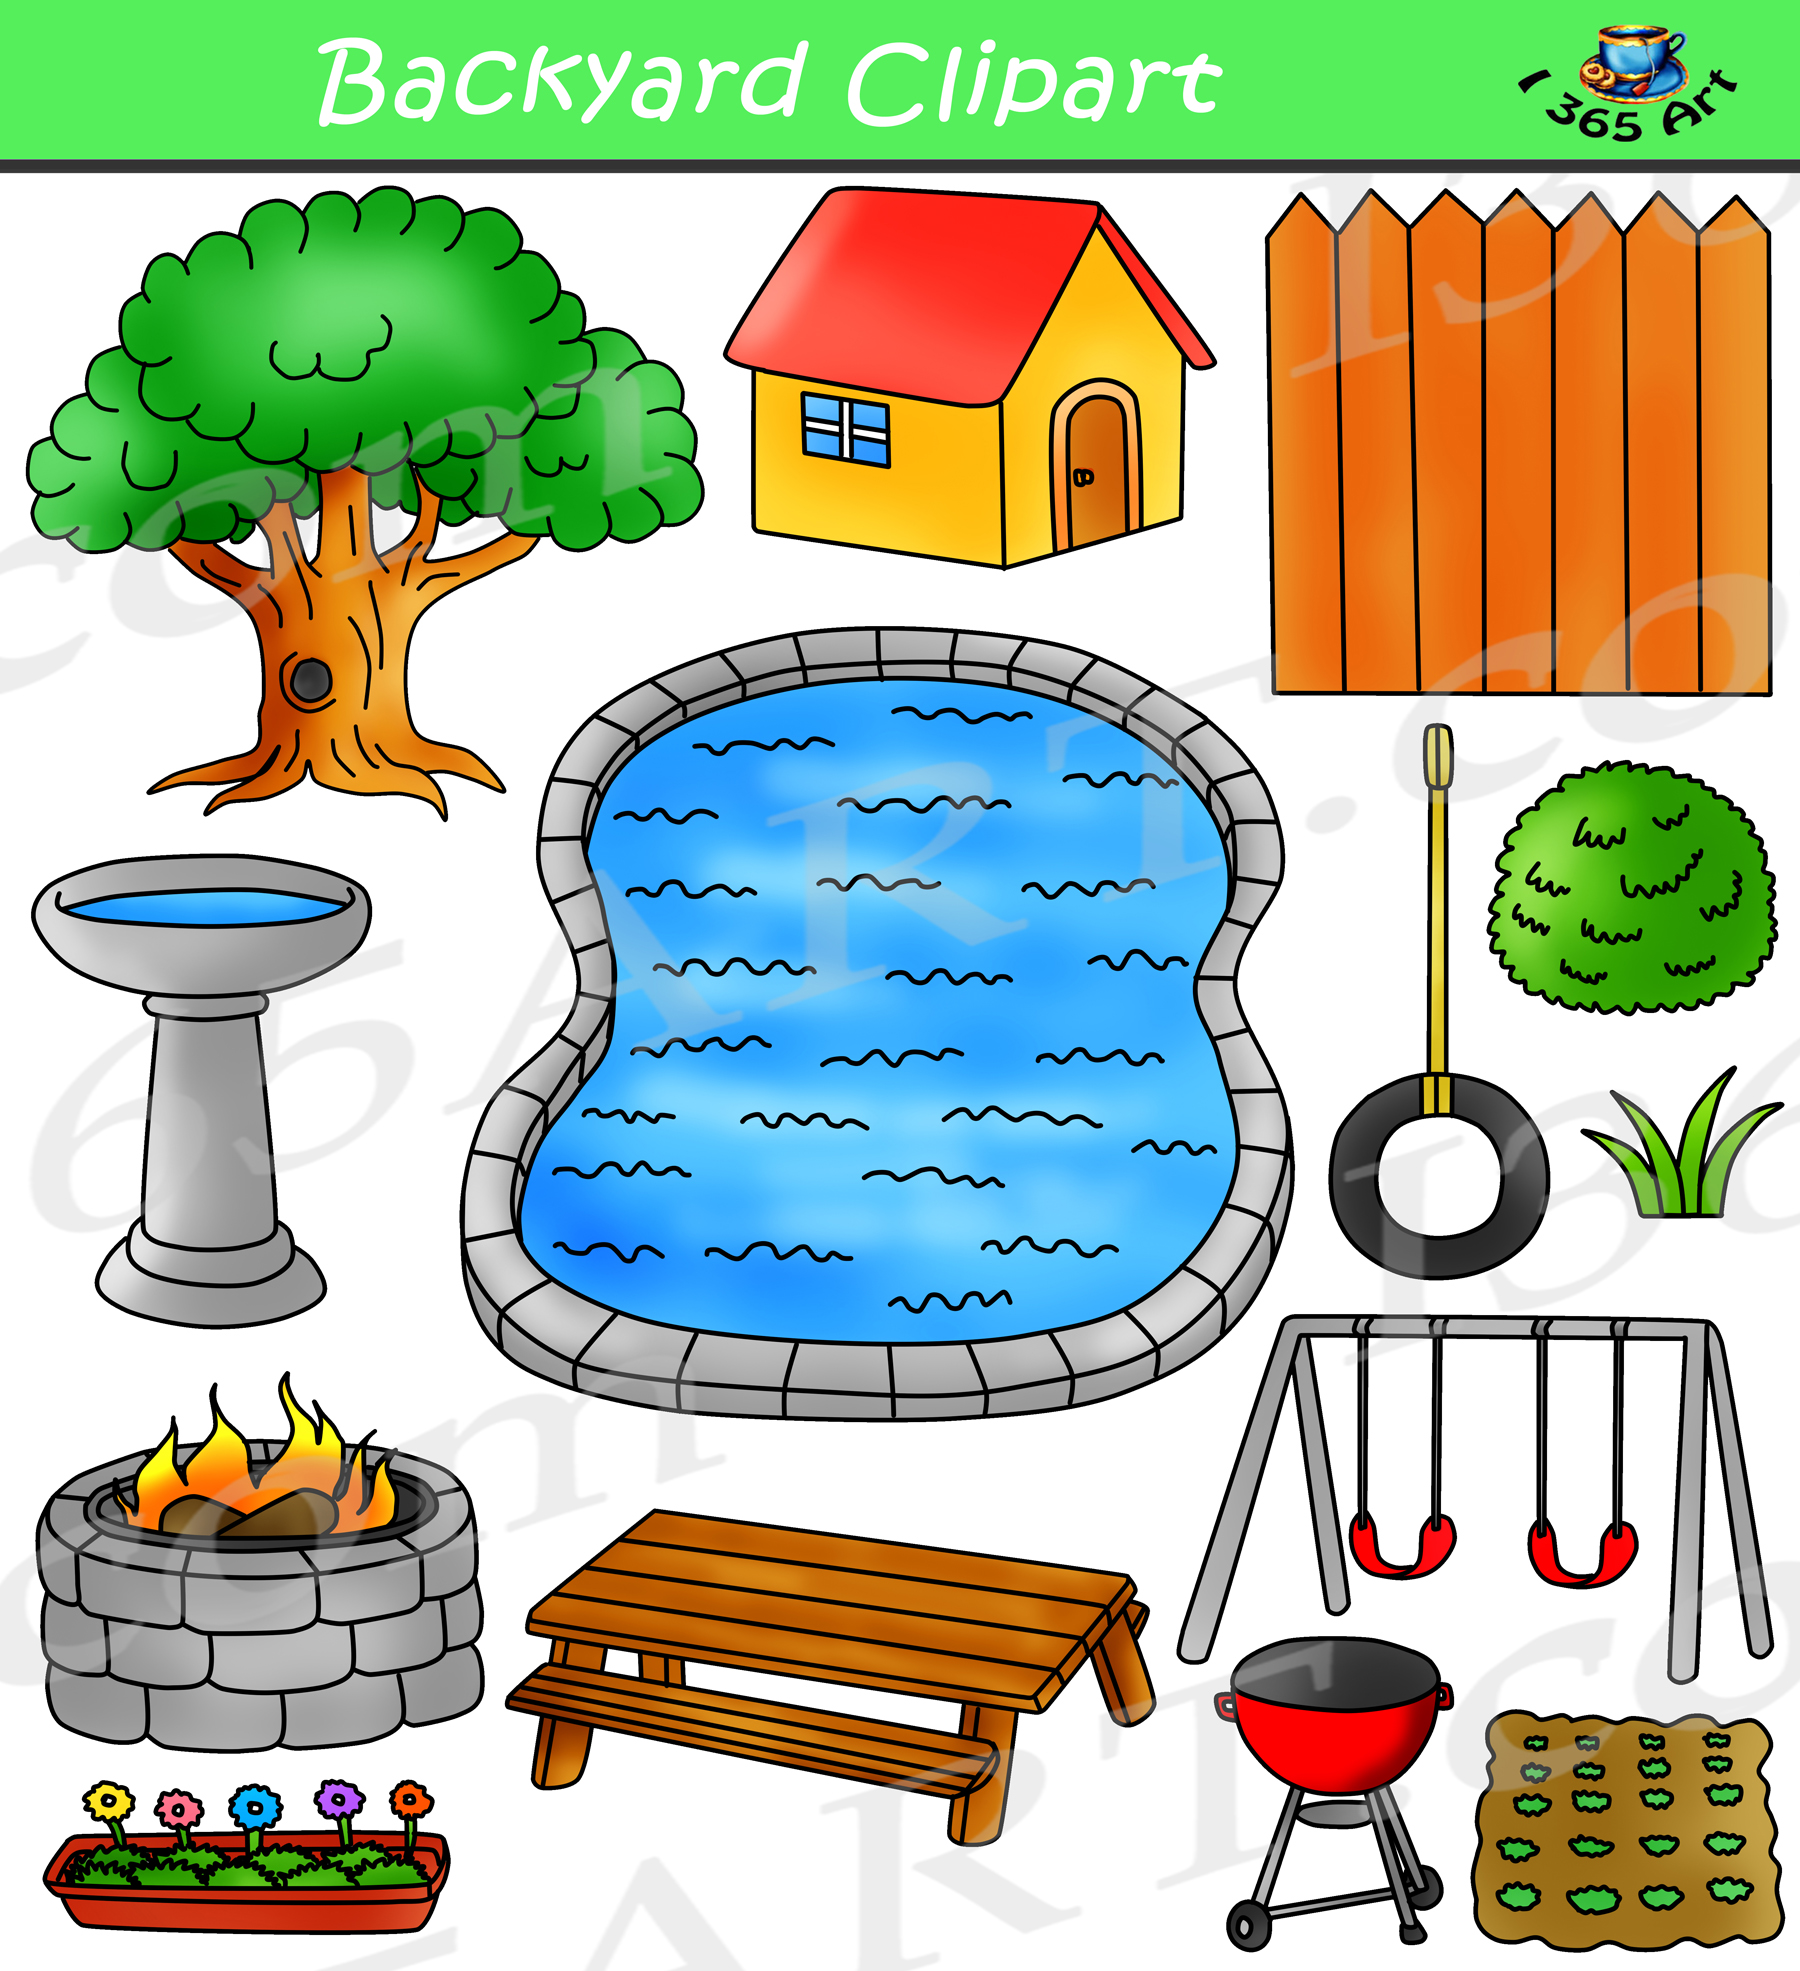 Backyard clipart clip art royalty free download Spring Backyard Clipart Bundle clip art royalty free download